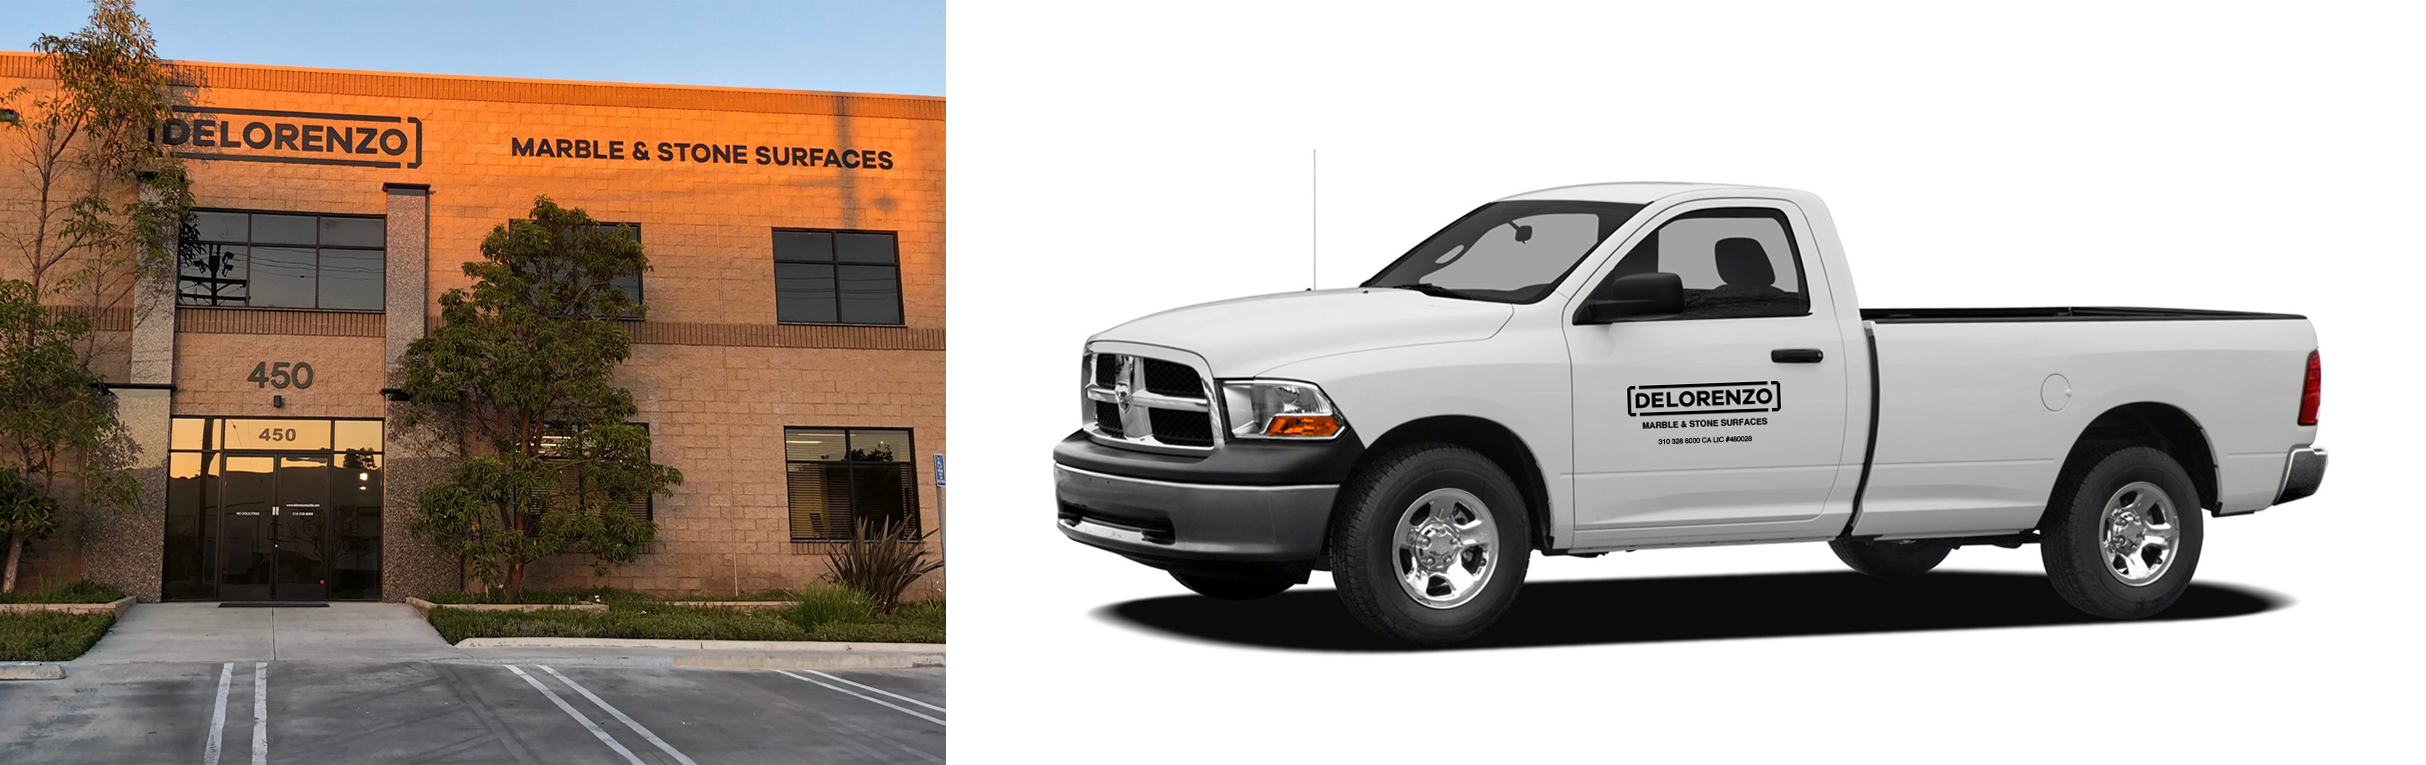 logo design for exterior signage and vehicle decals